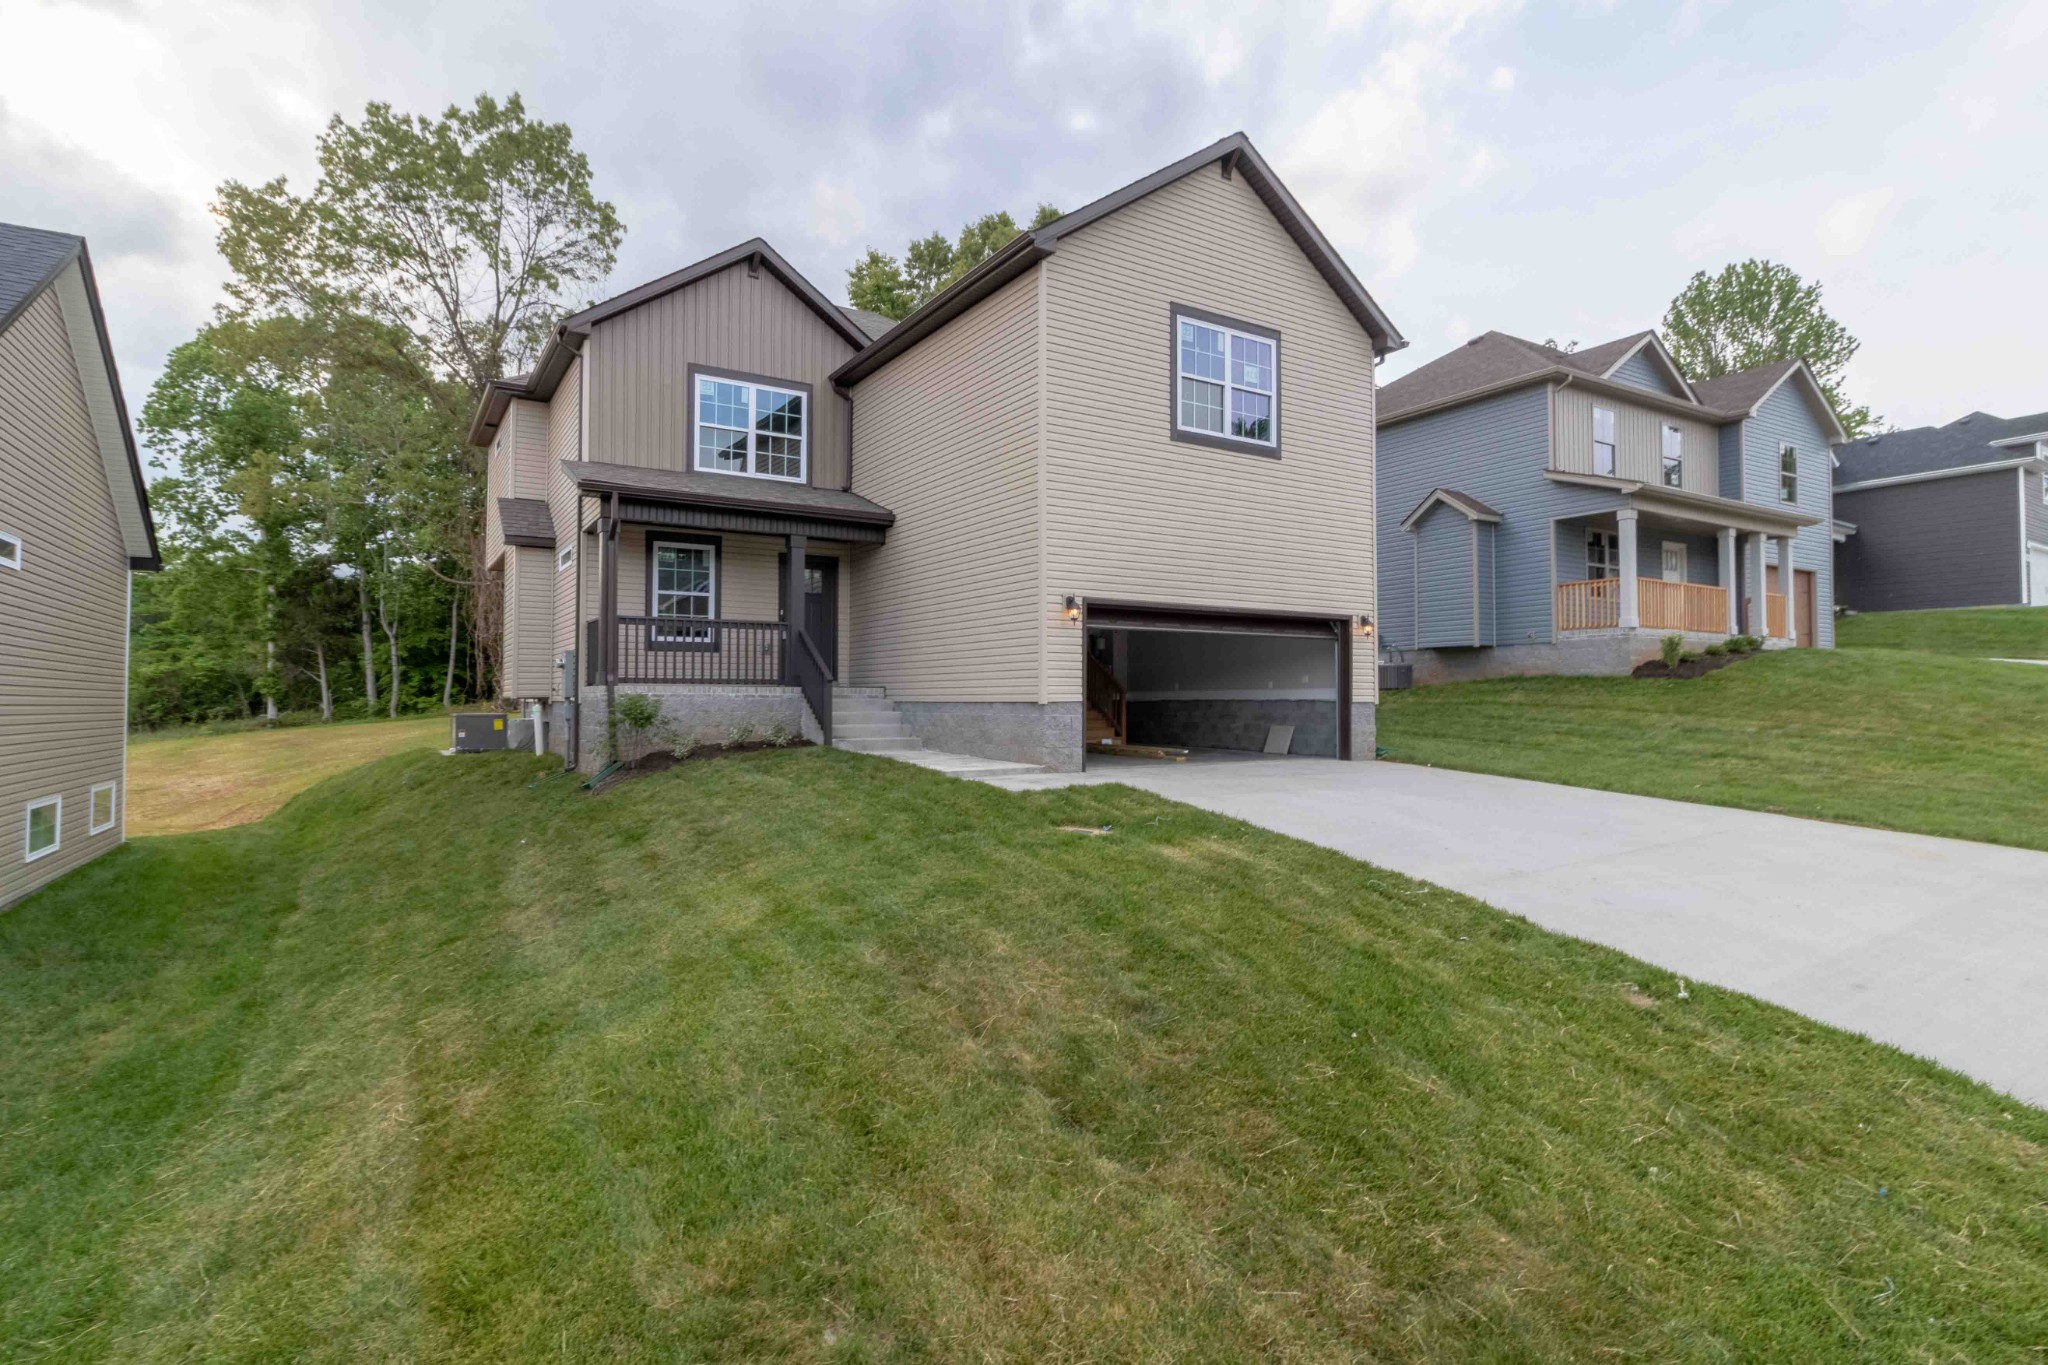 173 Bonnell Drive Property Photo - Clarksville, TN real estate listing